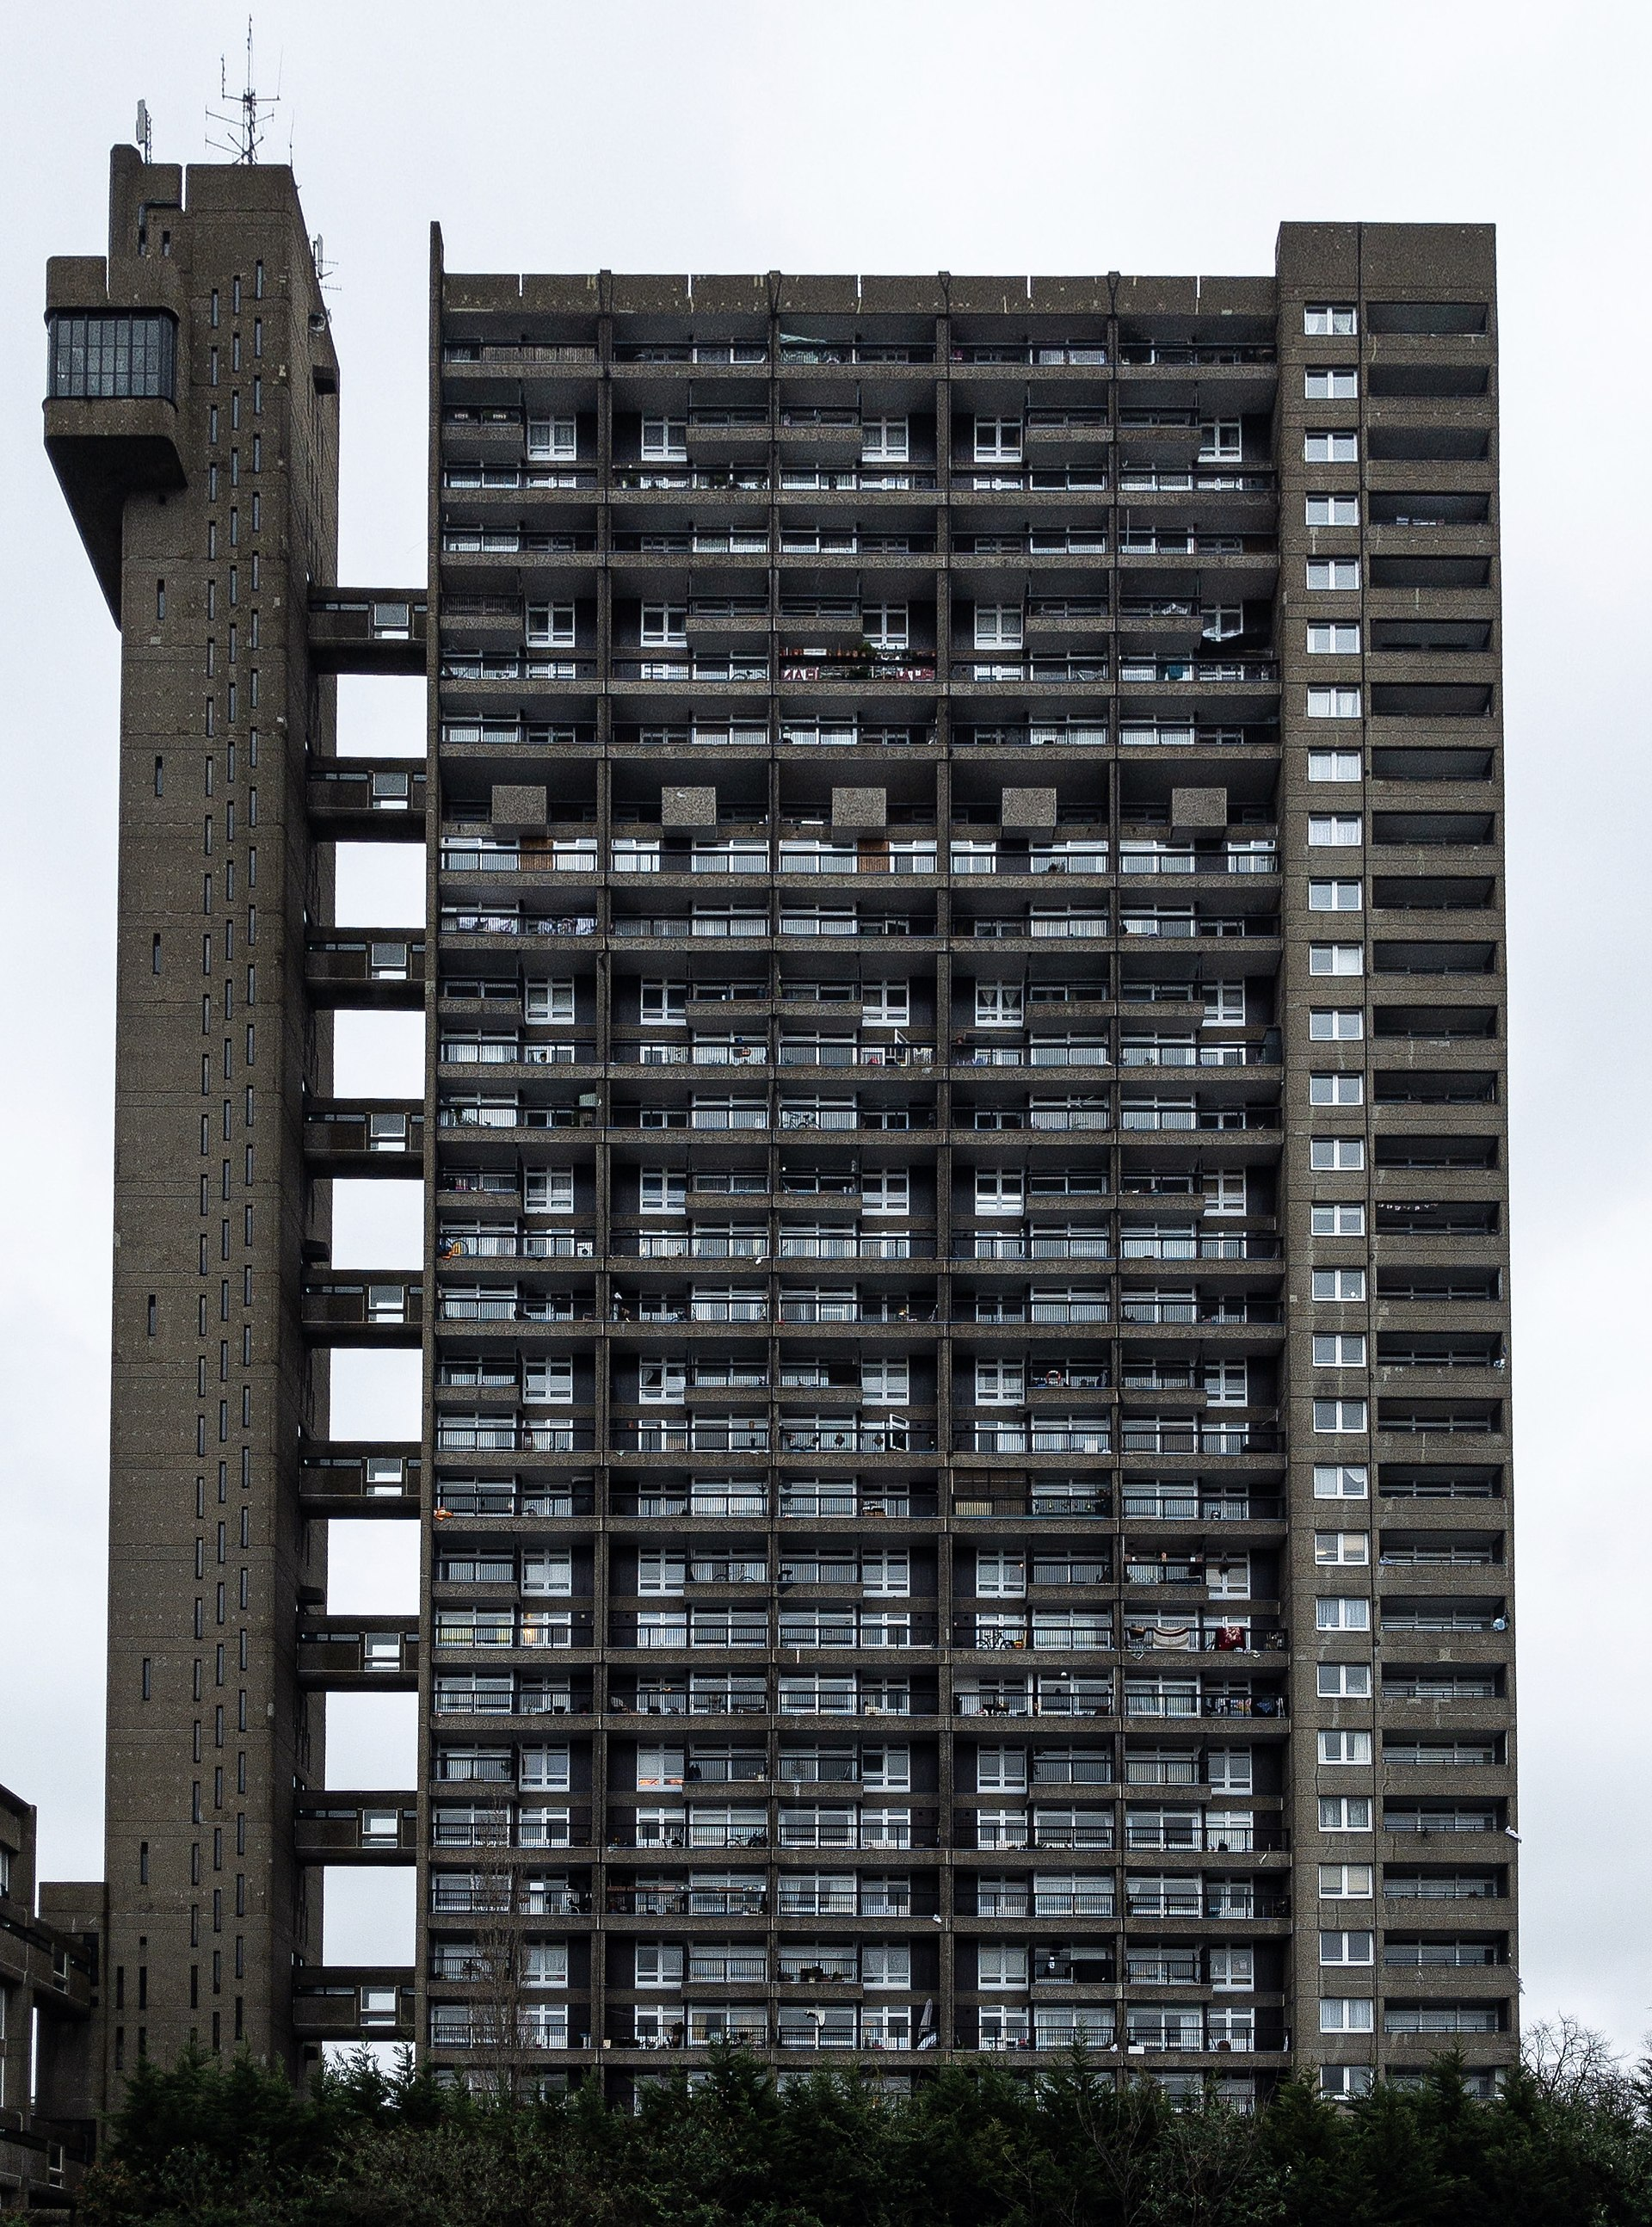 1920px-Trellick_Tower_front_view.jpg